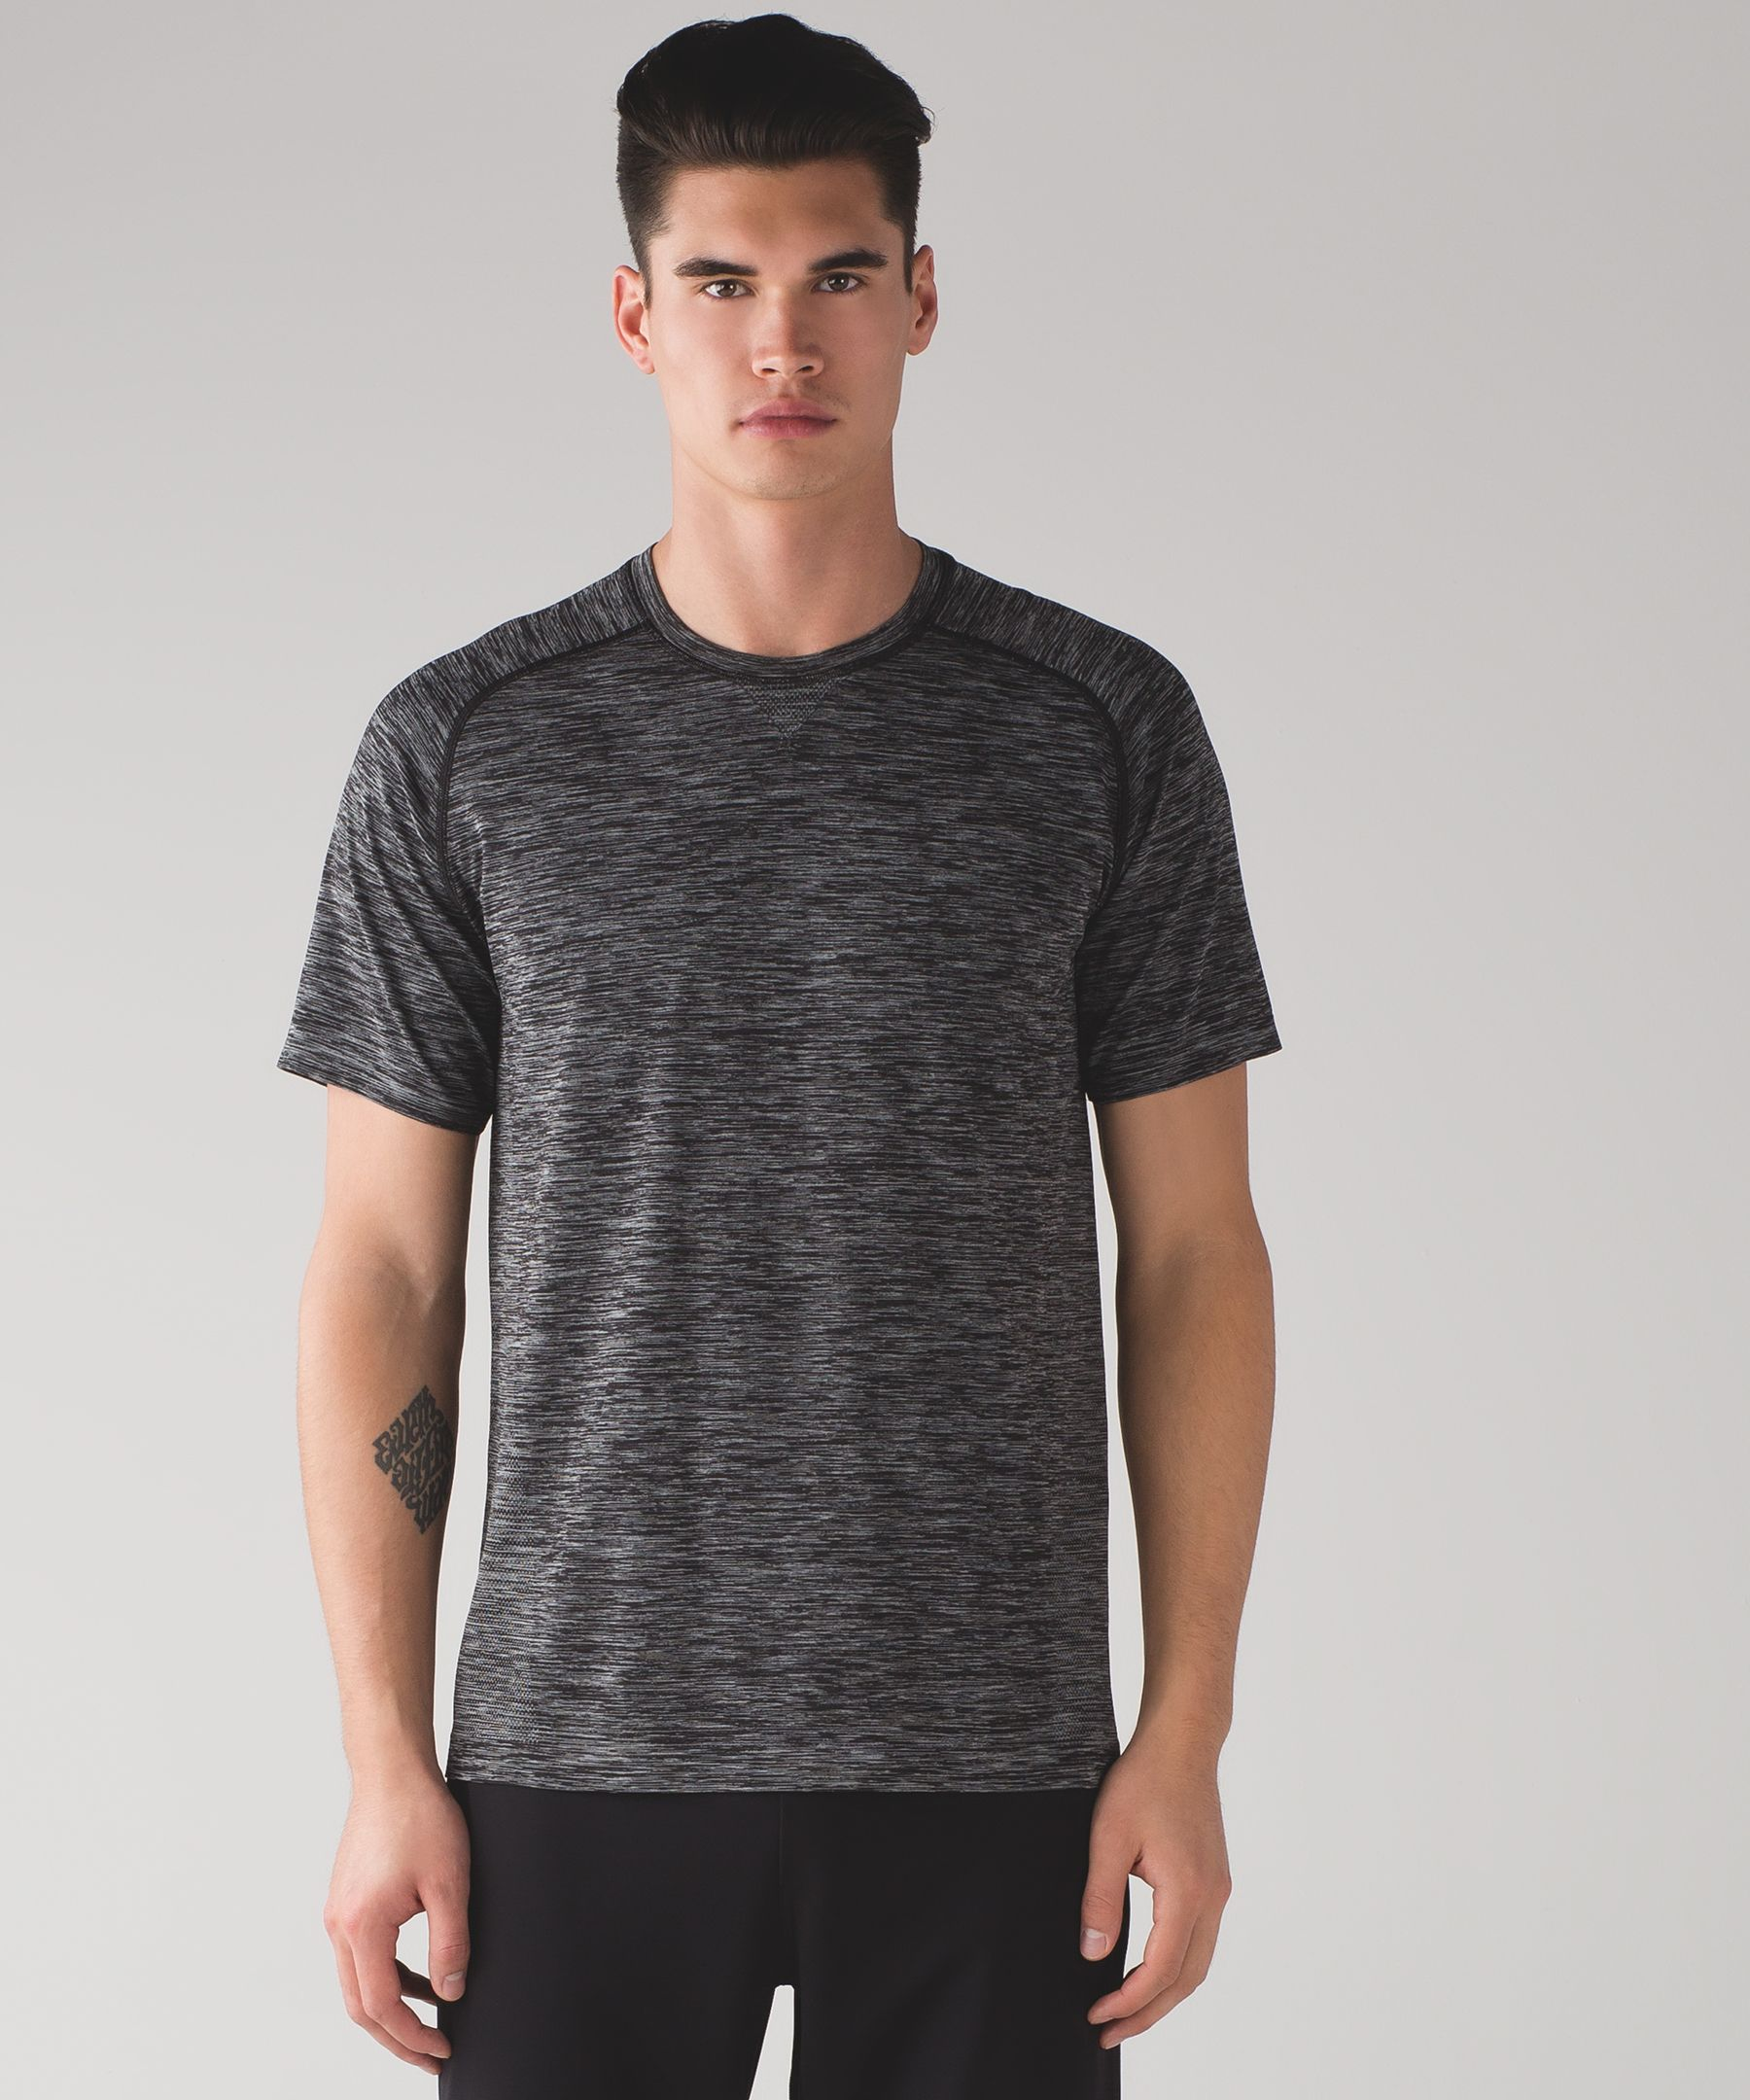 lulu guys Women's yoga-centric brand lululemon announced its plans to open its first dedicated men's store in 2016 -- but will men be willing to shell out $100 on yoga gear from a brand so focused on.